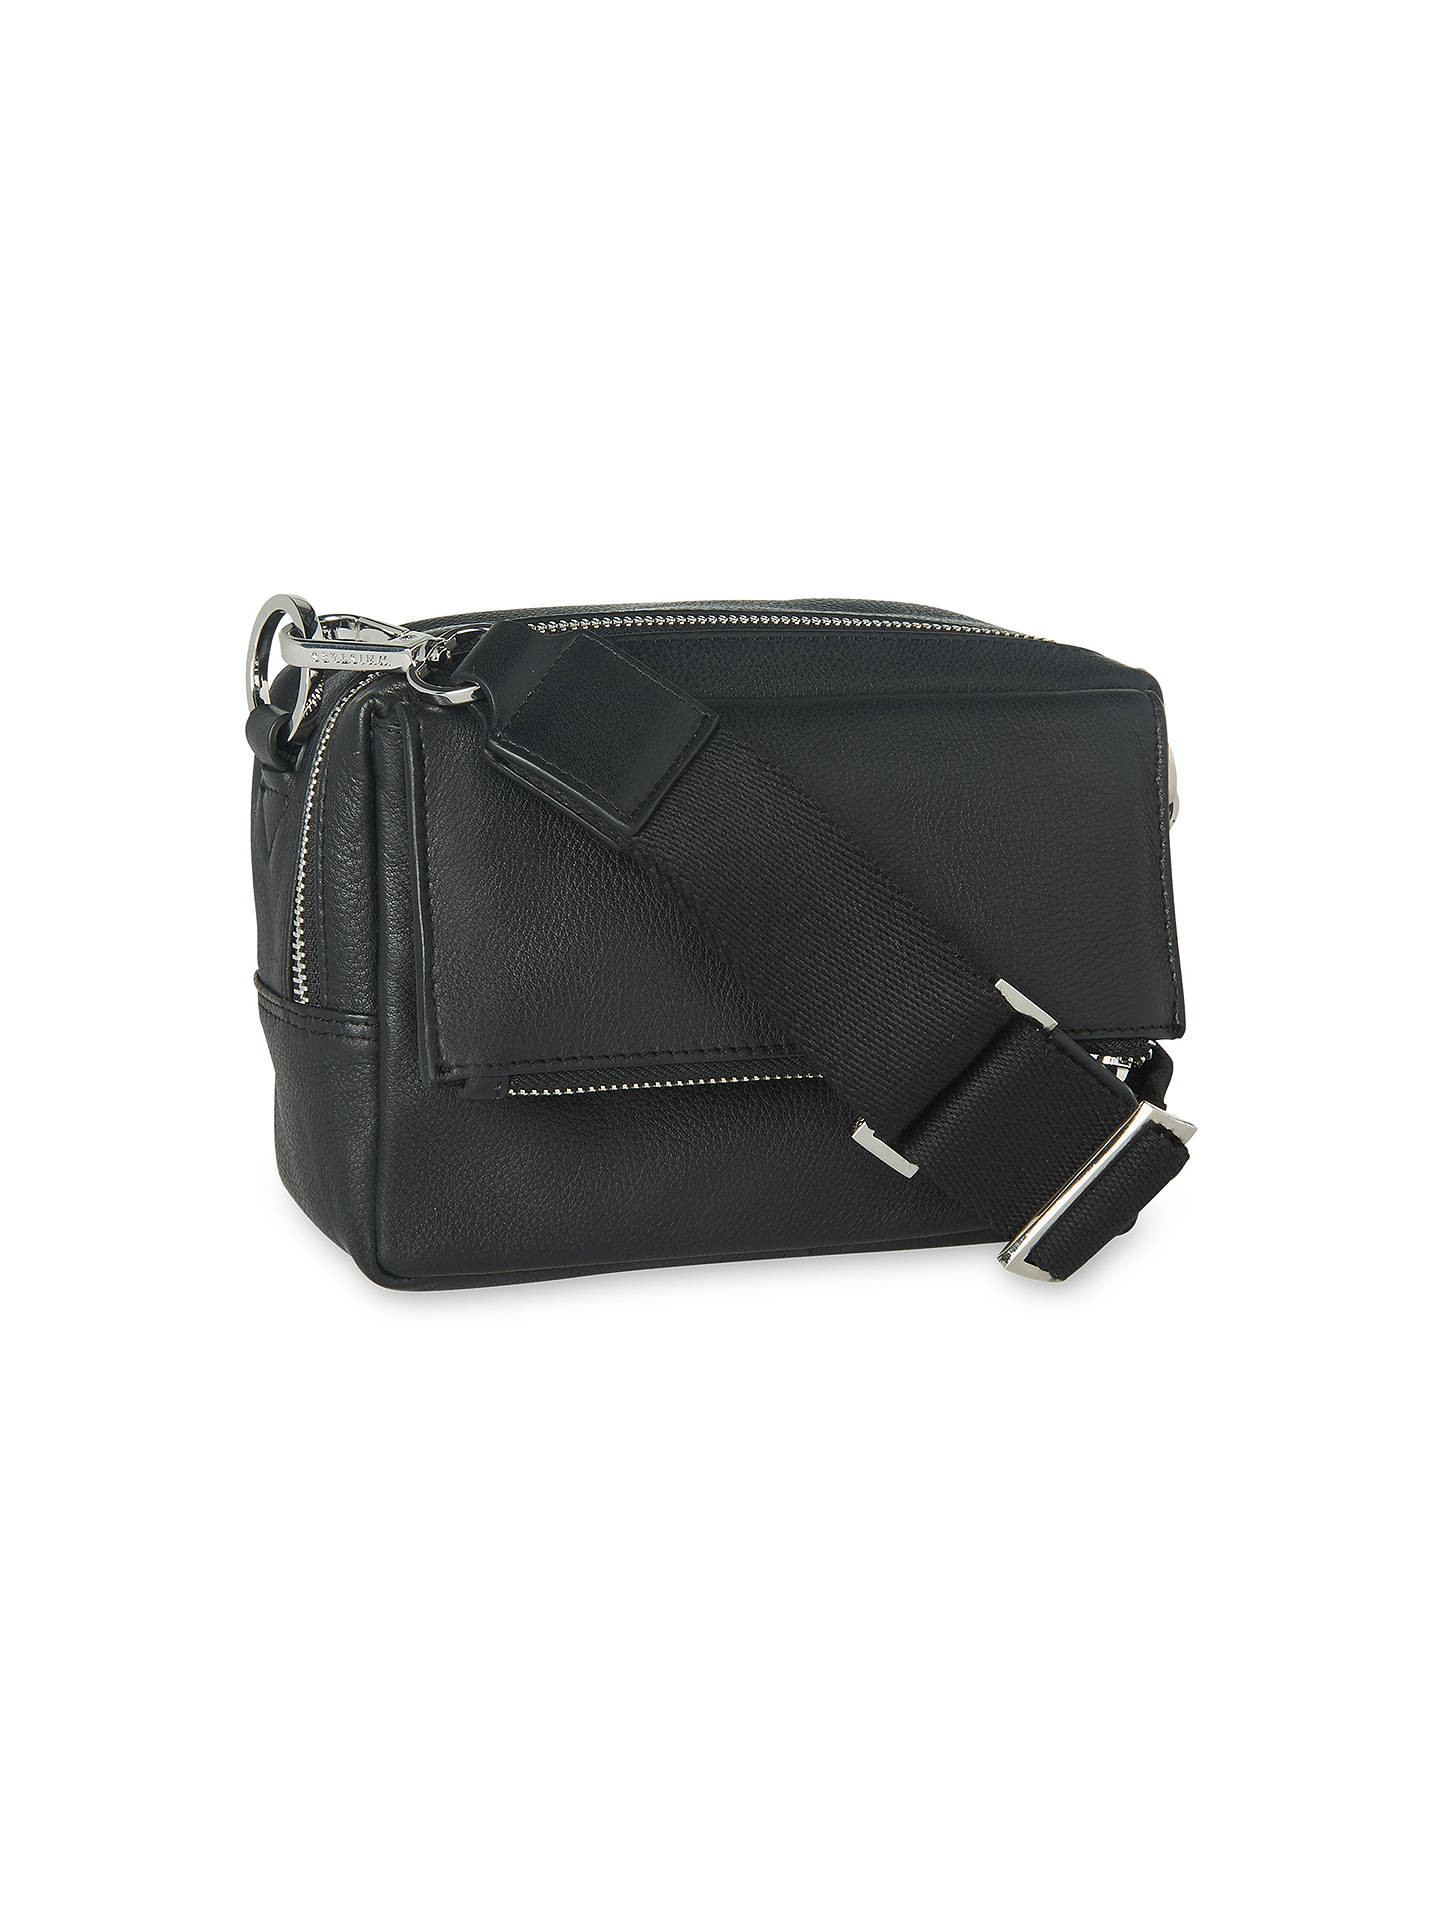 ... BuyWhistles Bibi Leather Cross Body Bag 7e8d33ff59db9